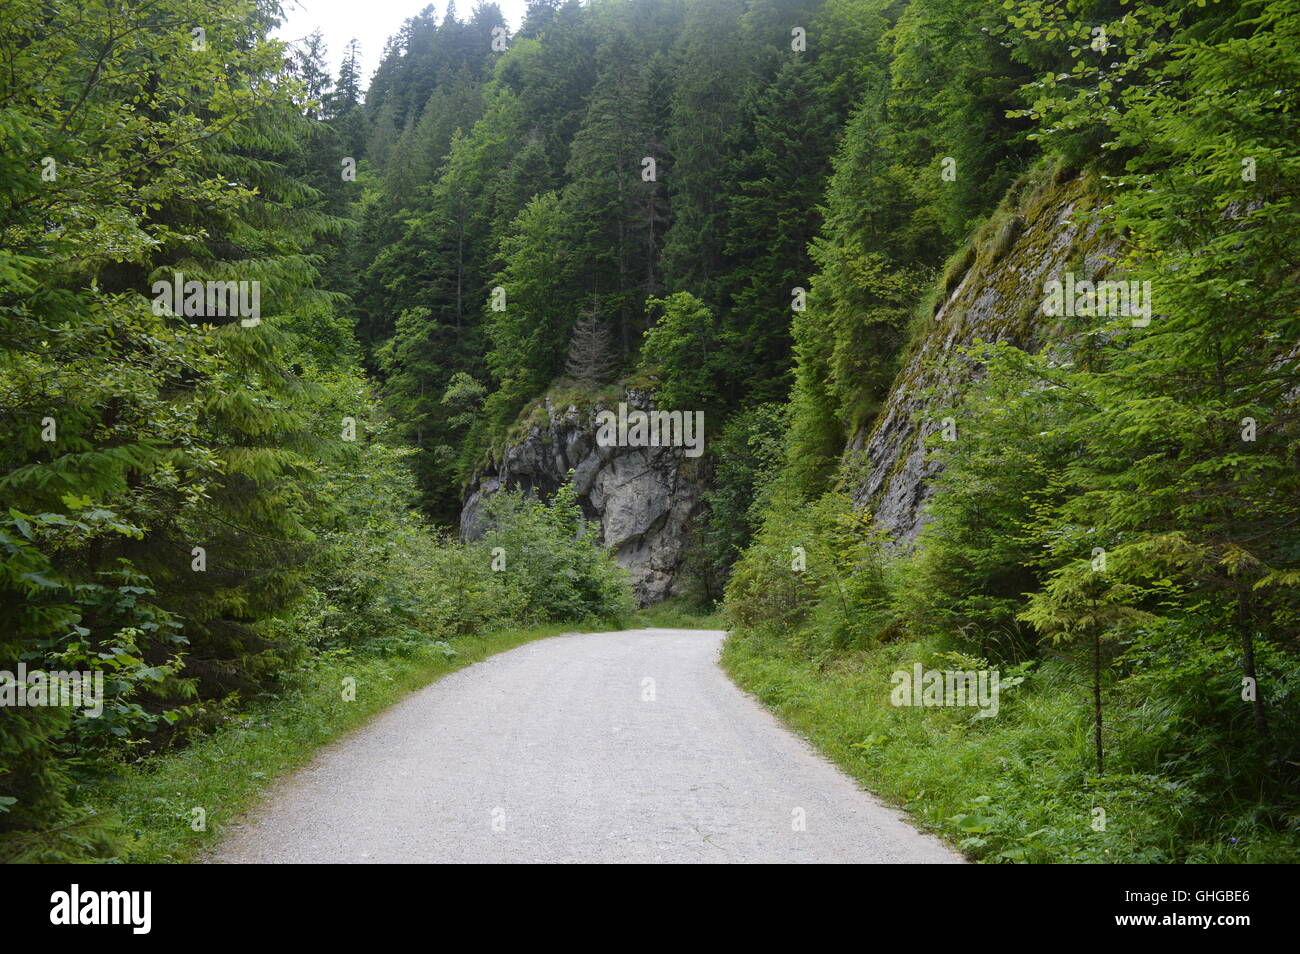 Unpaved road in a valley - Stock Image